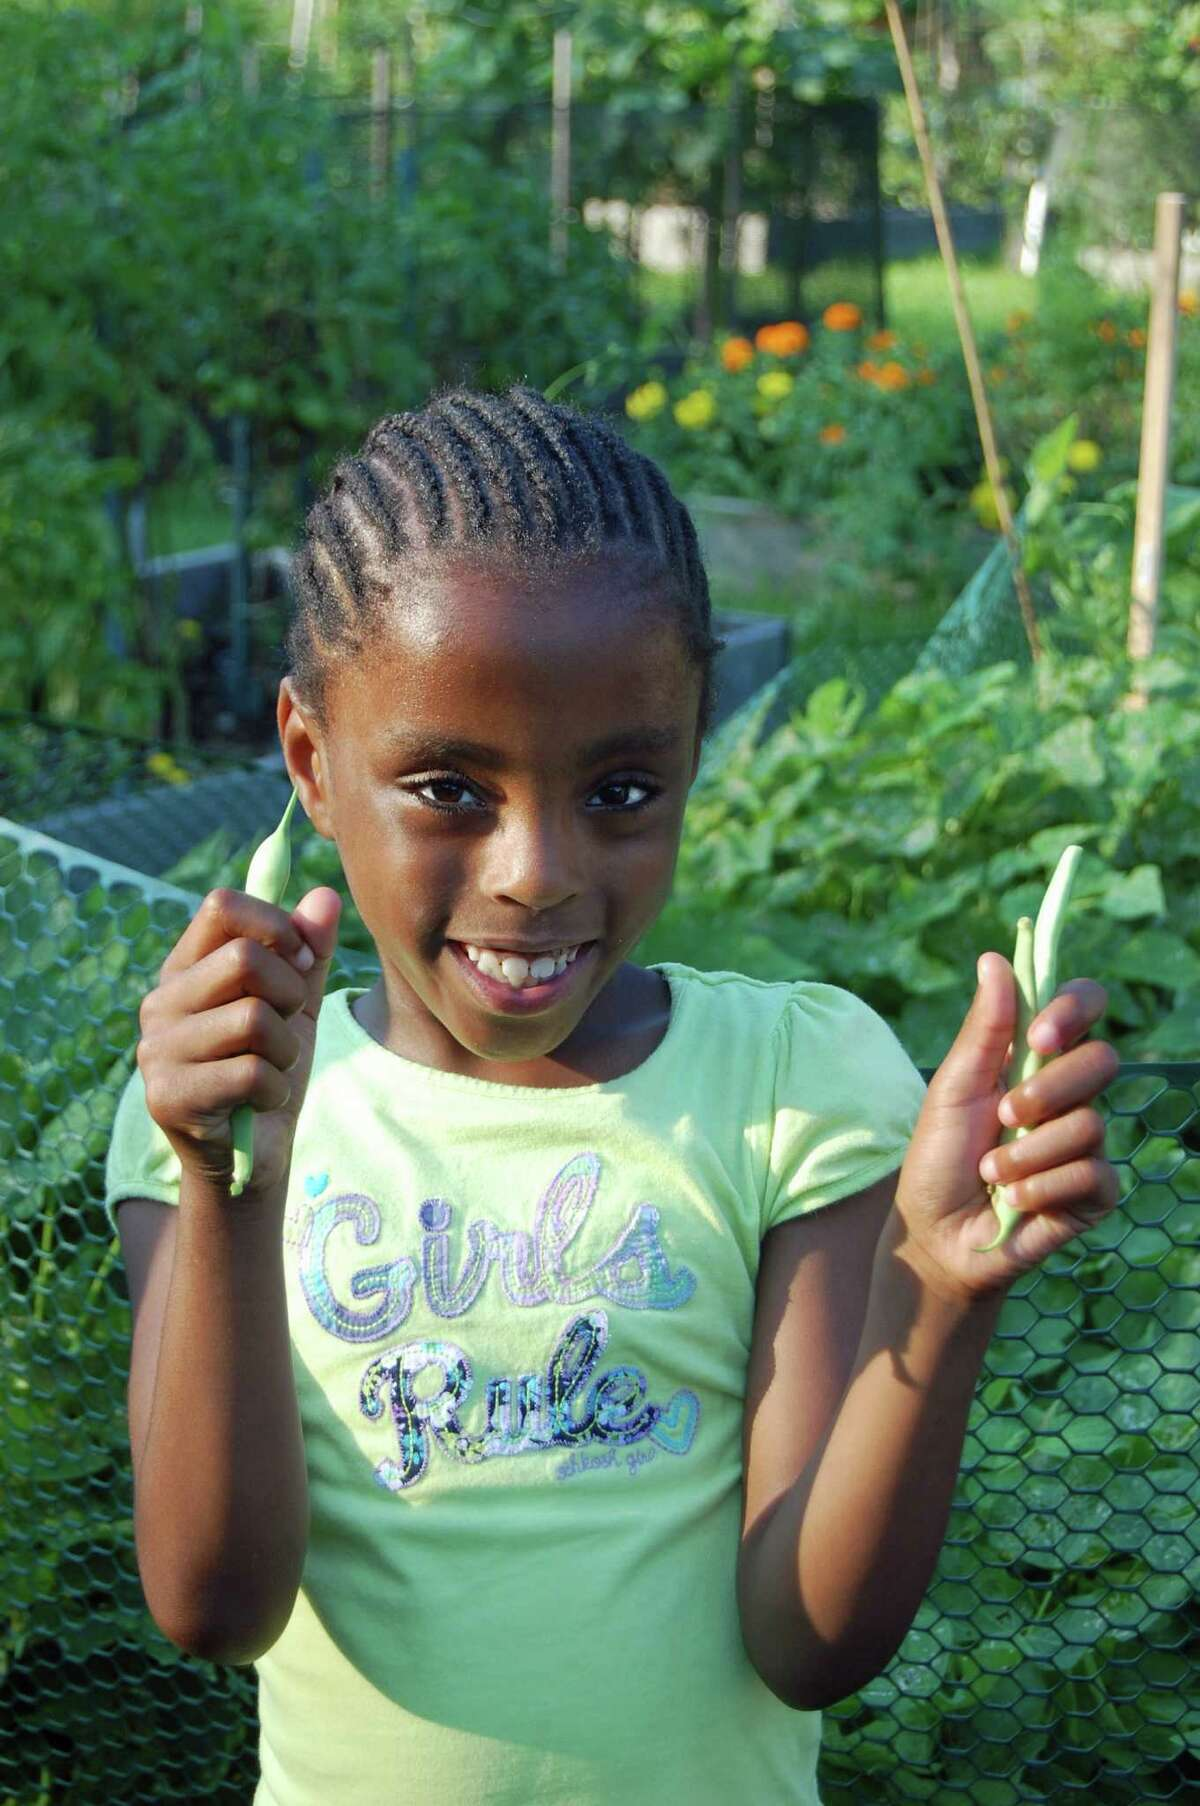 Cynthia Sailrilus, 6, shows off the string beans she just picked at the community garden at Fodor Farm in Norwalk Monday during the culmination of the Growing Gardens, Growing Health program.